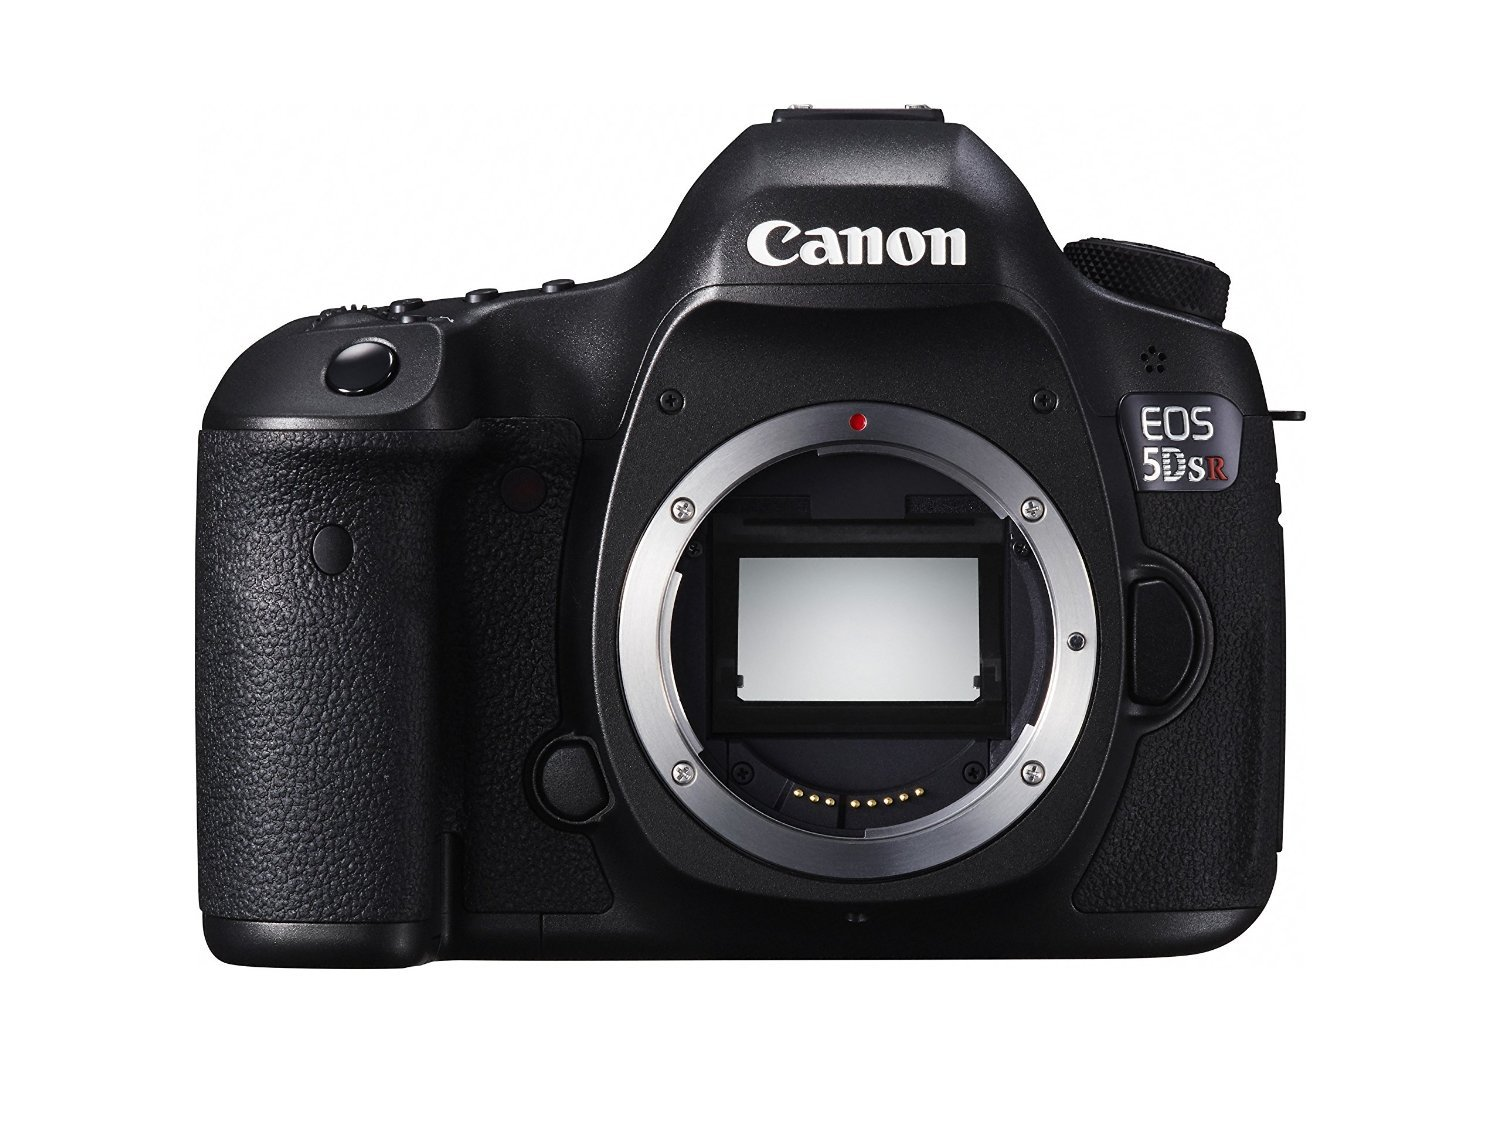 Camera Dslr Camera Price In Usa buy canon eos 5ds r 50 6 megapixels digital slr camera body only online at low price in india reviews ratin